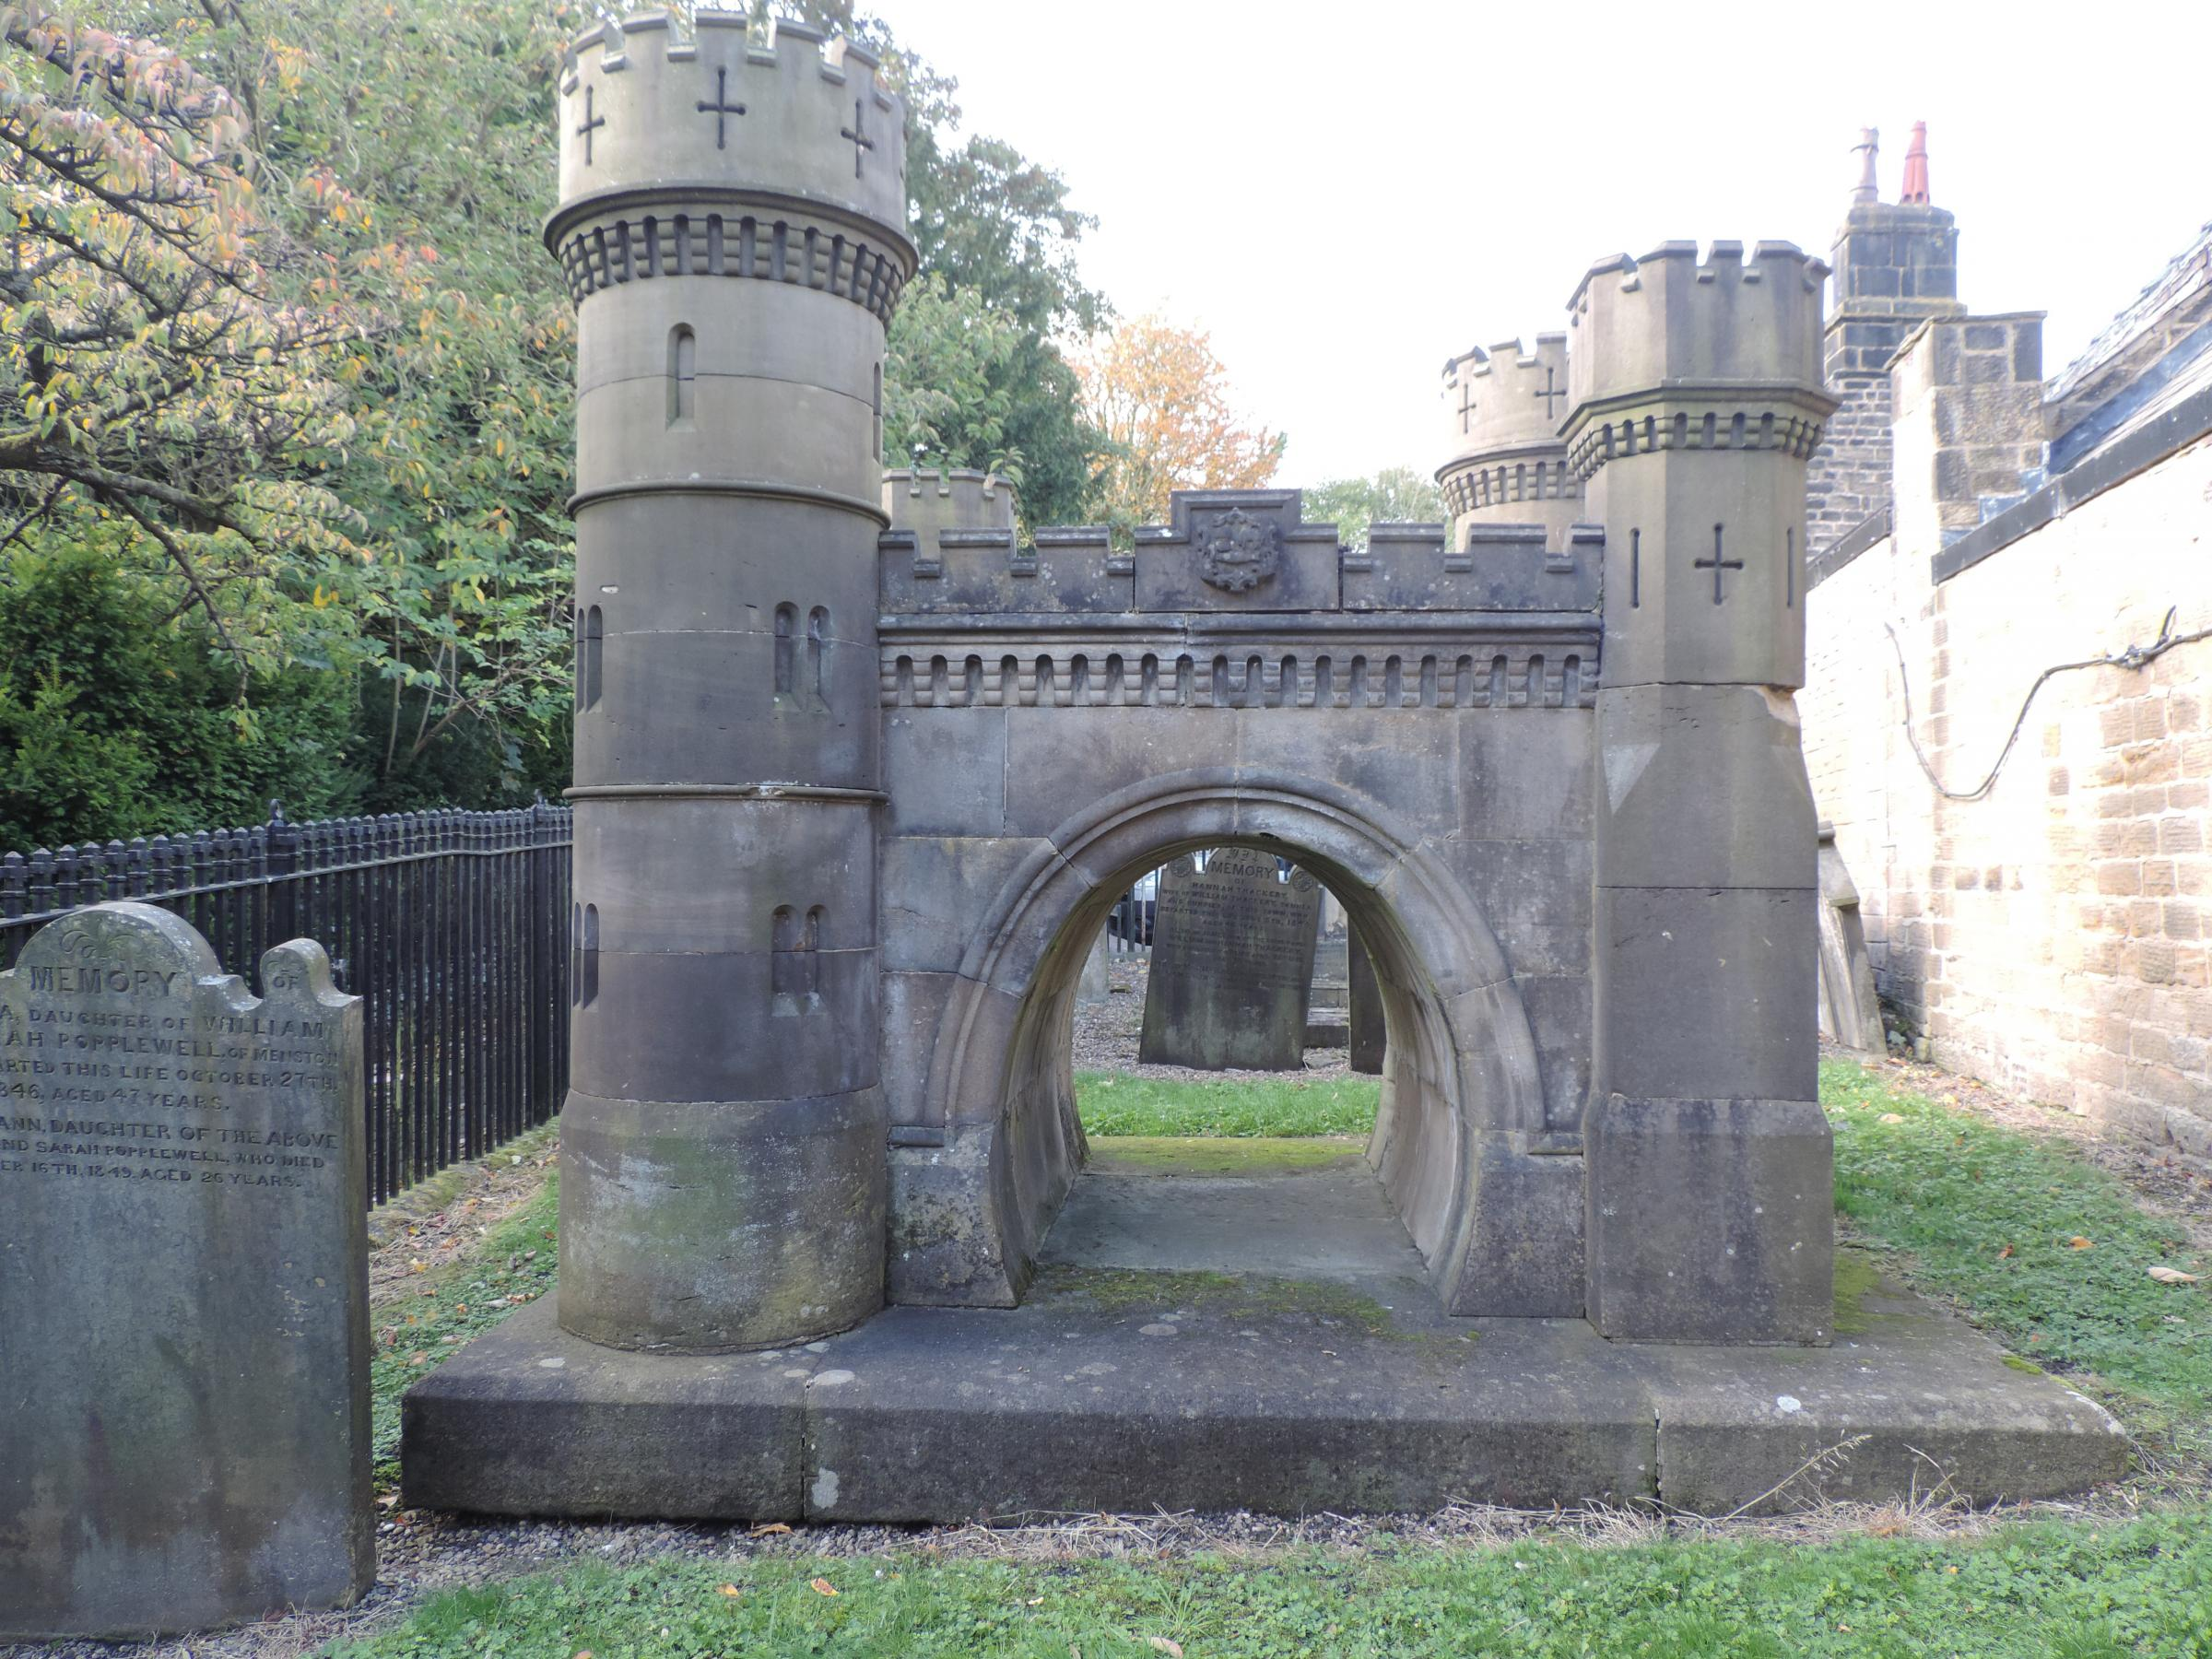 The Navvies Memorial in Otley